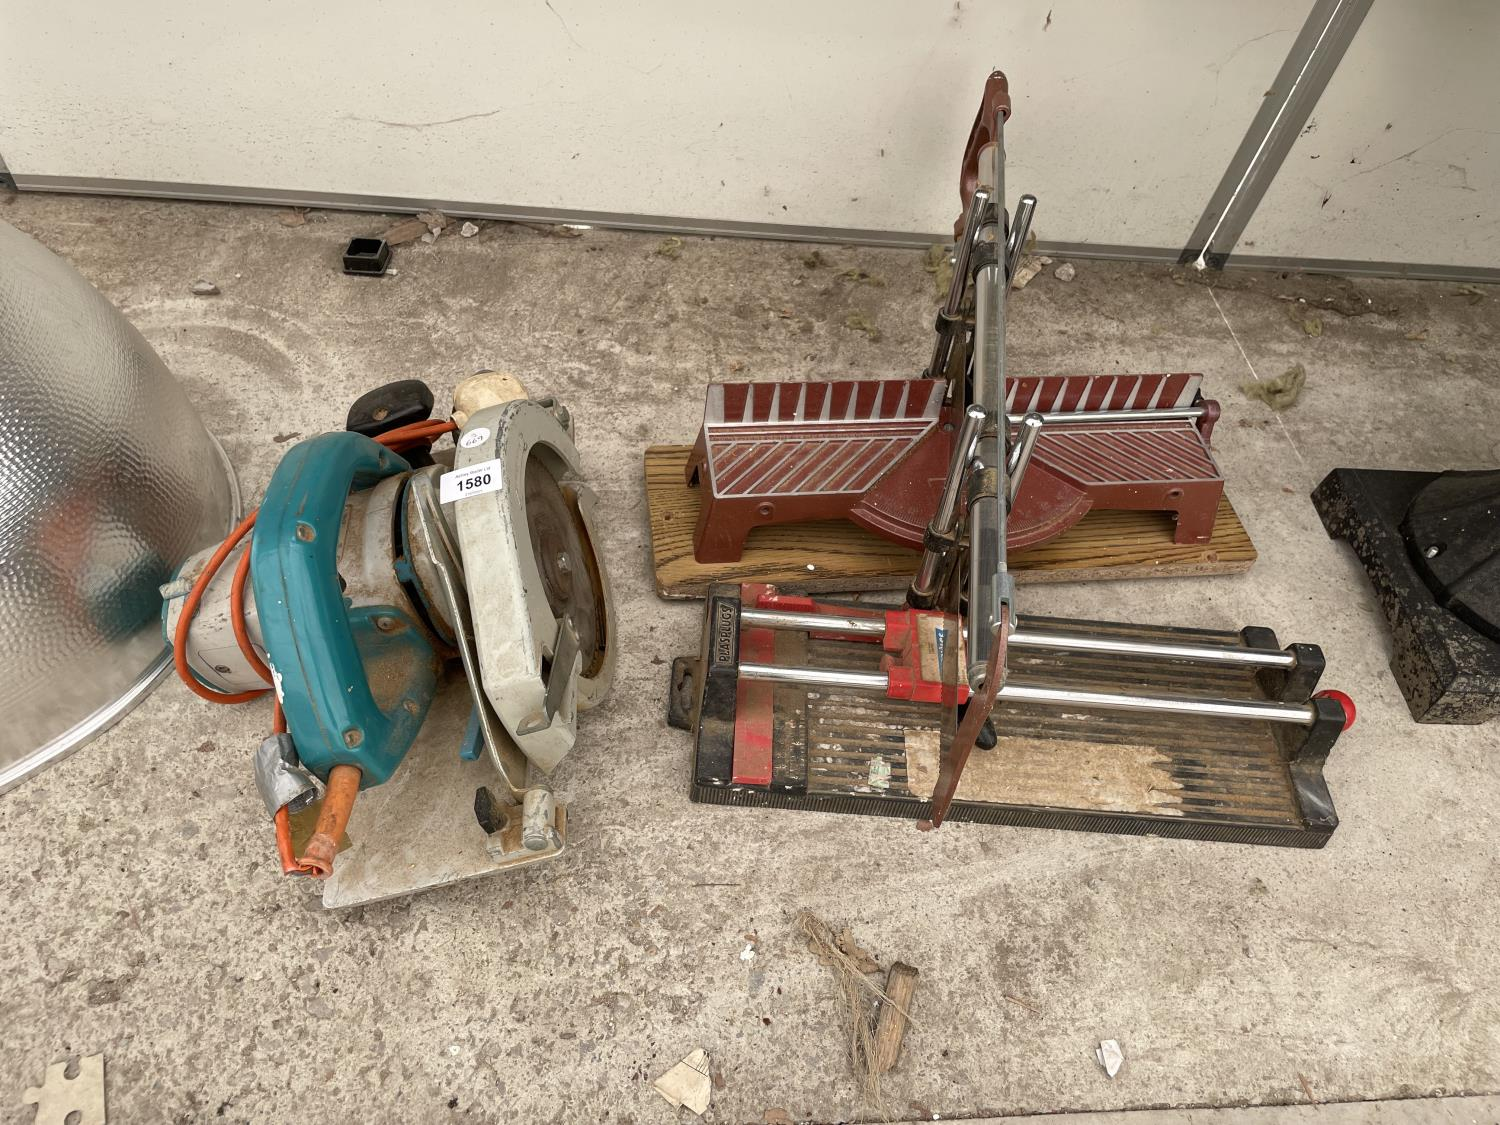 A WOLF CIRCULAR SAW AND TWO MITRE SAWS - Image 2 of 4